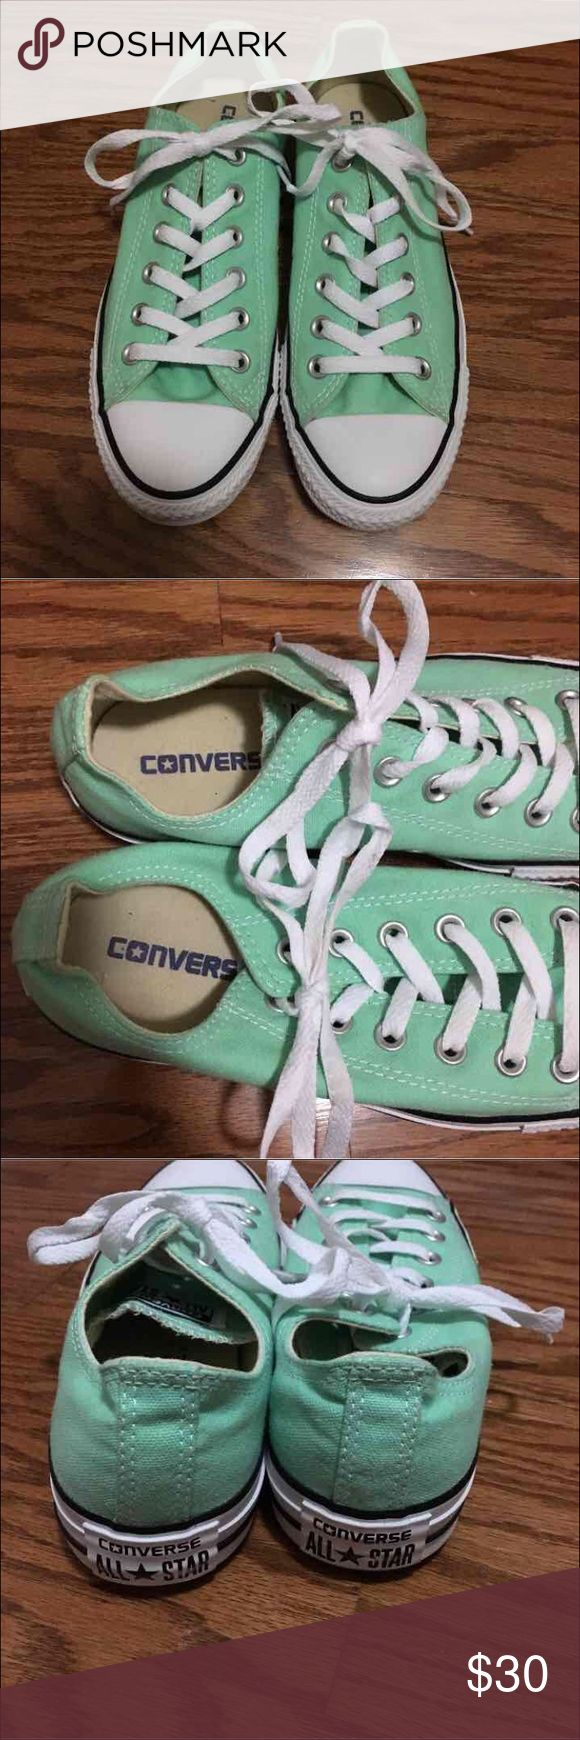 Teal all star converse Perfect condition, women's size 8 or men's size 6 Converse Shoes Sneakers